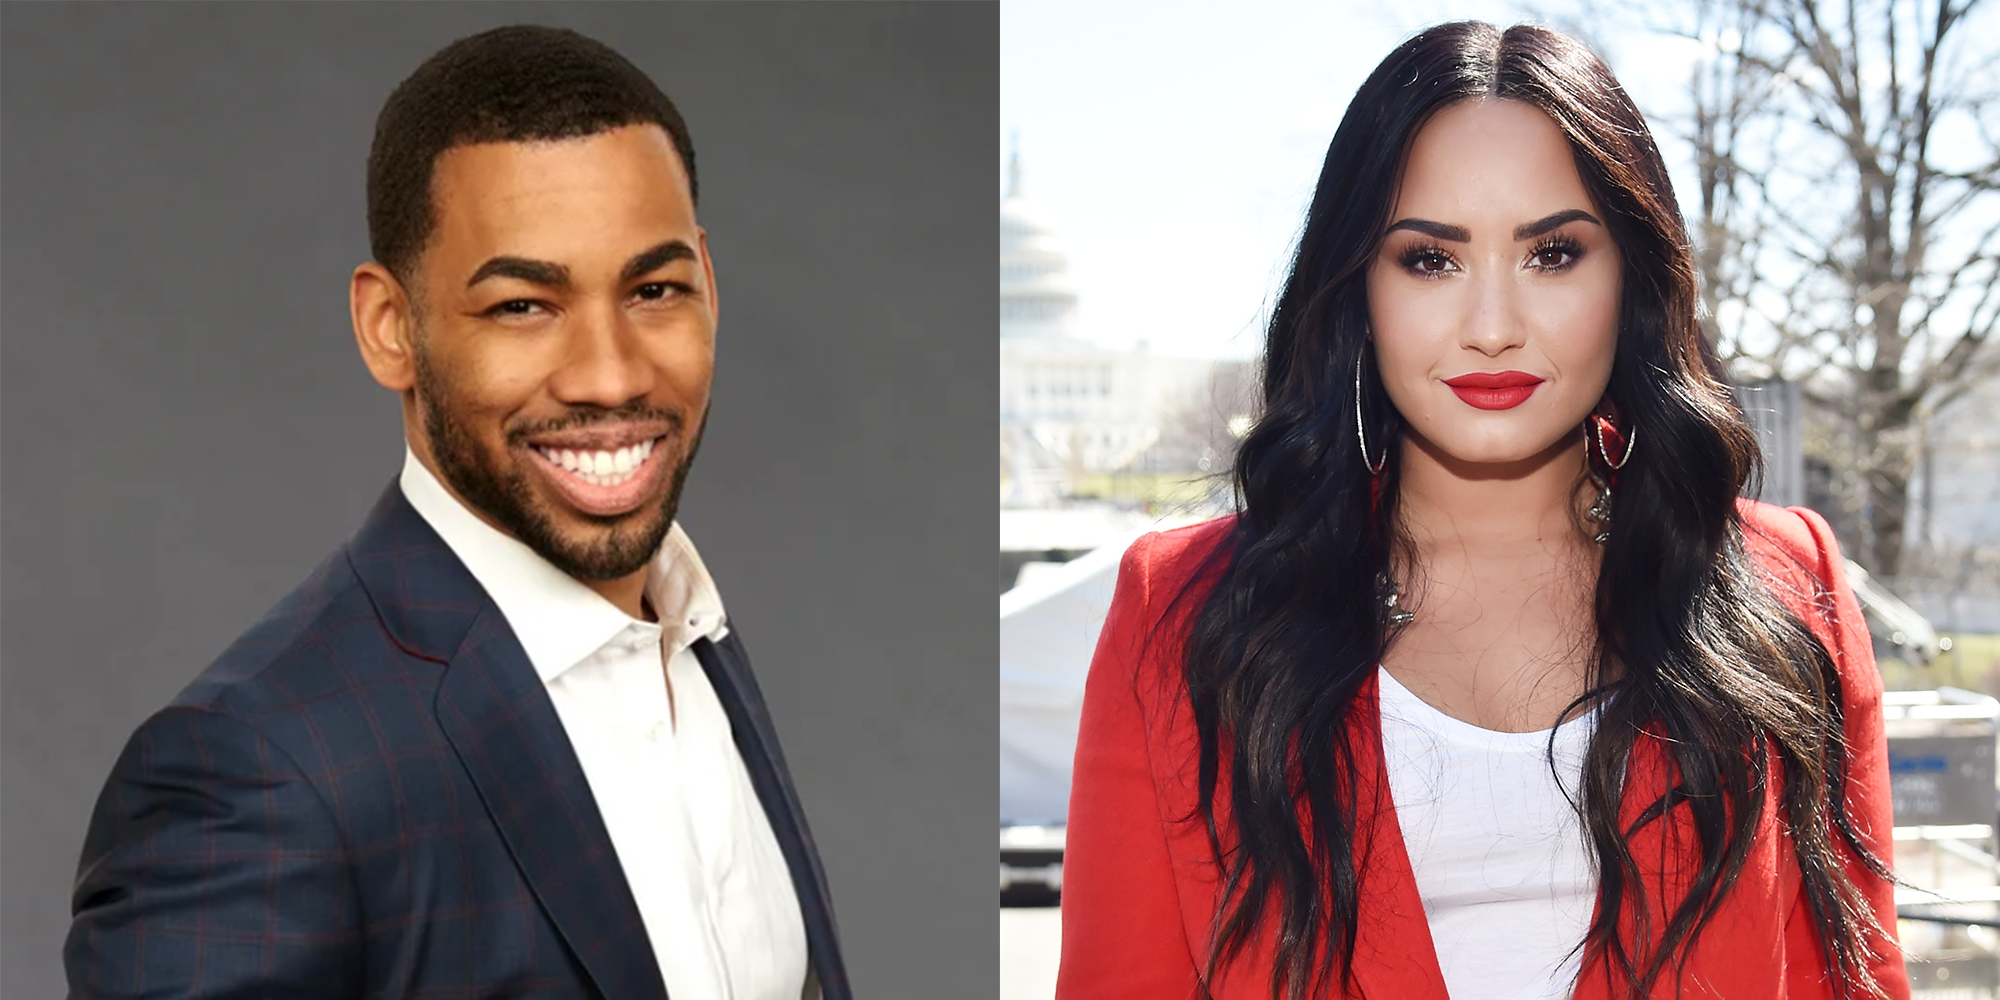 Demi Lovato And Mike Johnson From 'The Bachelorette' Are Dating